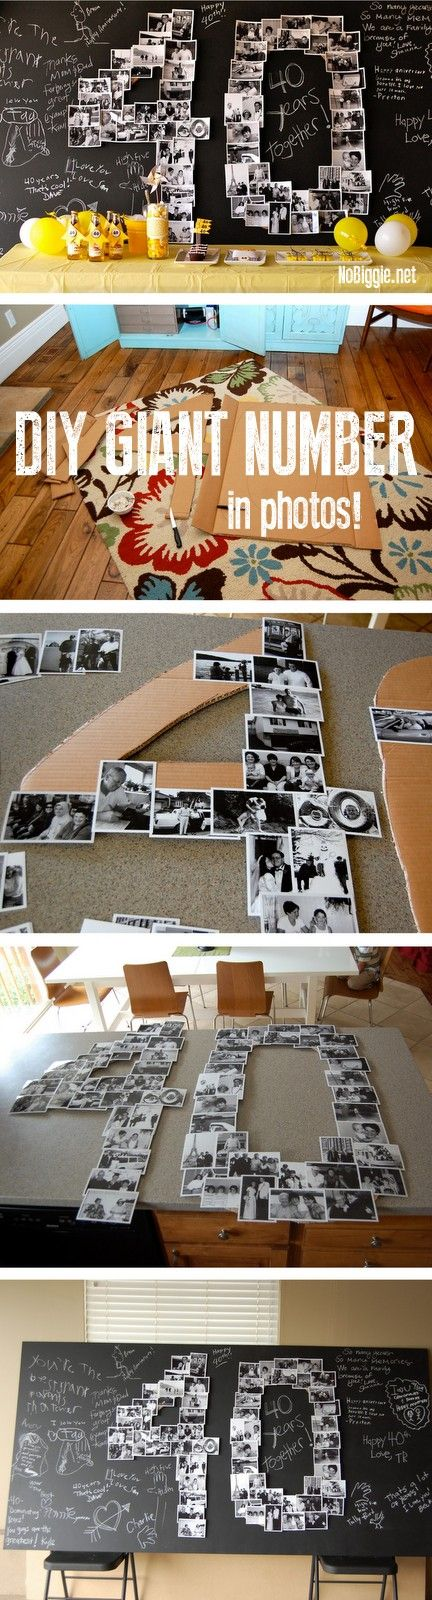 DIY giant number in photos | NoBiggie.net